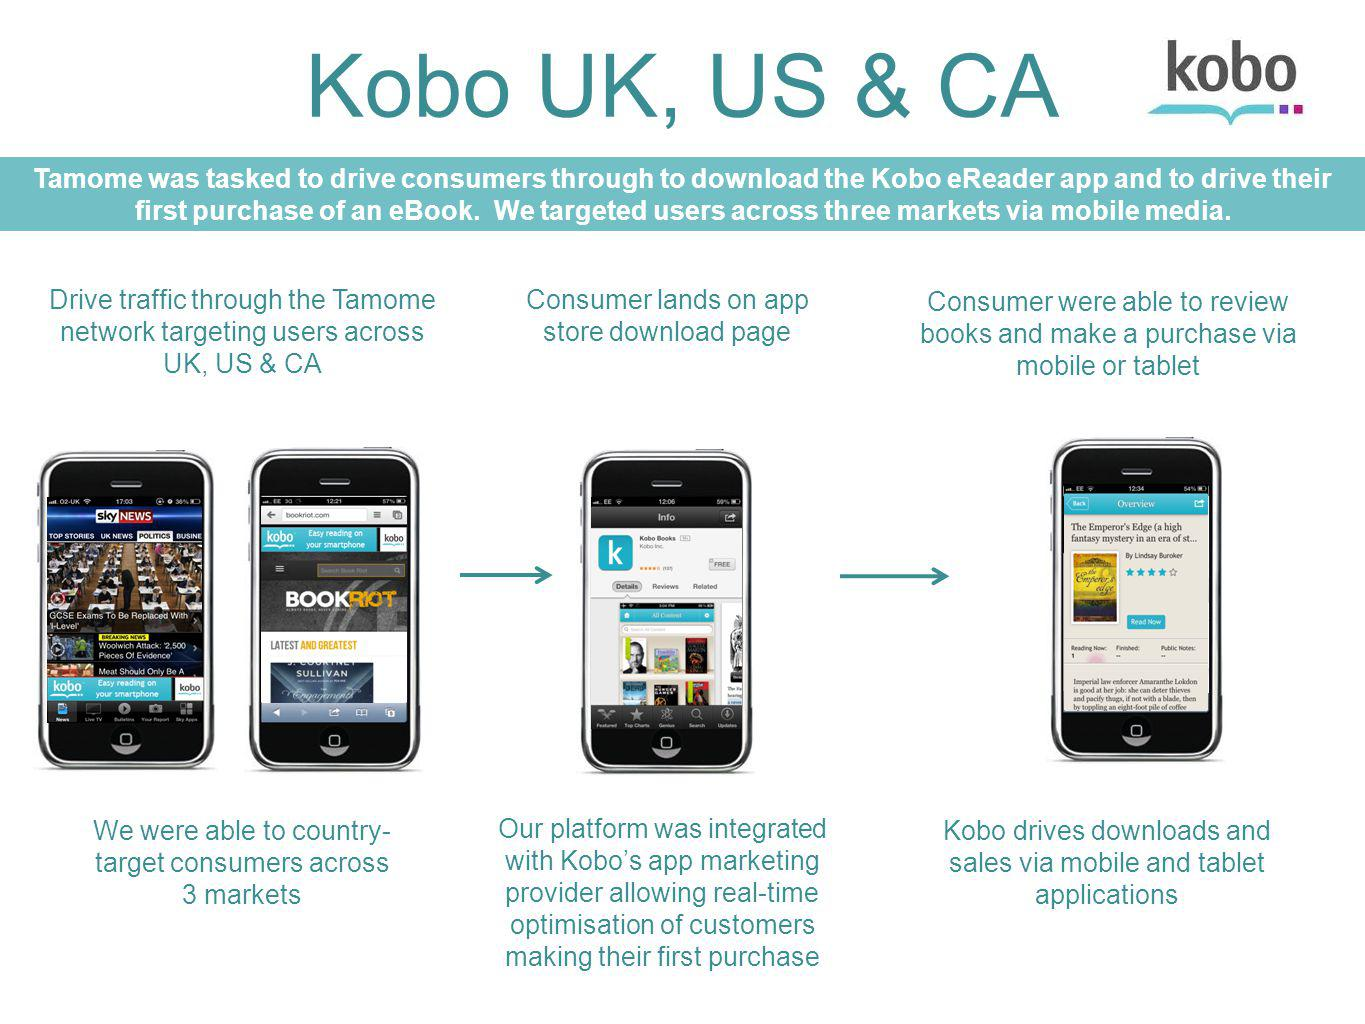 CONFIDENTIAL Kobo UK, US & CA Drive traffic through the Tamome network targeting users across UK, US & CA Consumer lands on app store download page Consumer were able to review books and make a purchase via mobile or tablet Tamome was tasked to drive consumers through to download the Kobo eReader app and to drive their first purchase of an eBook.